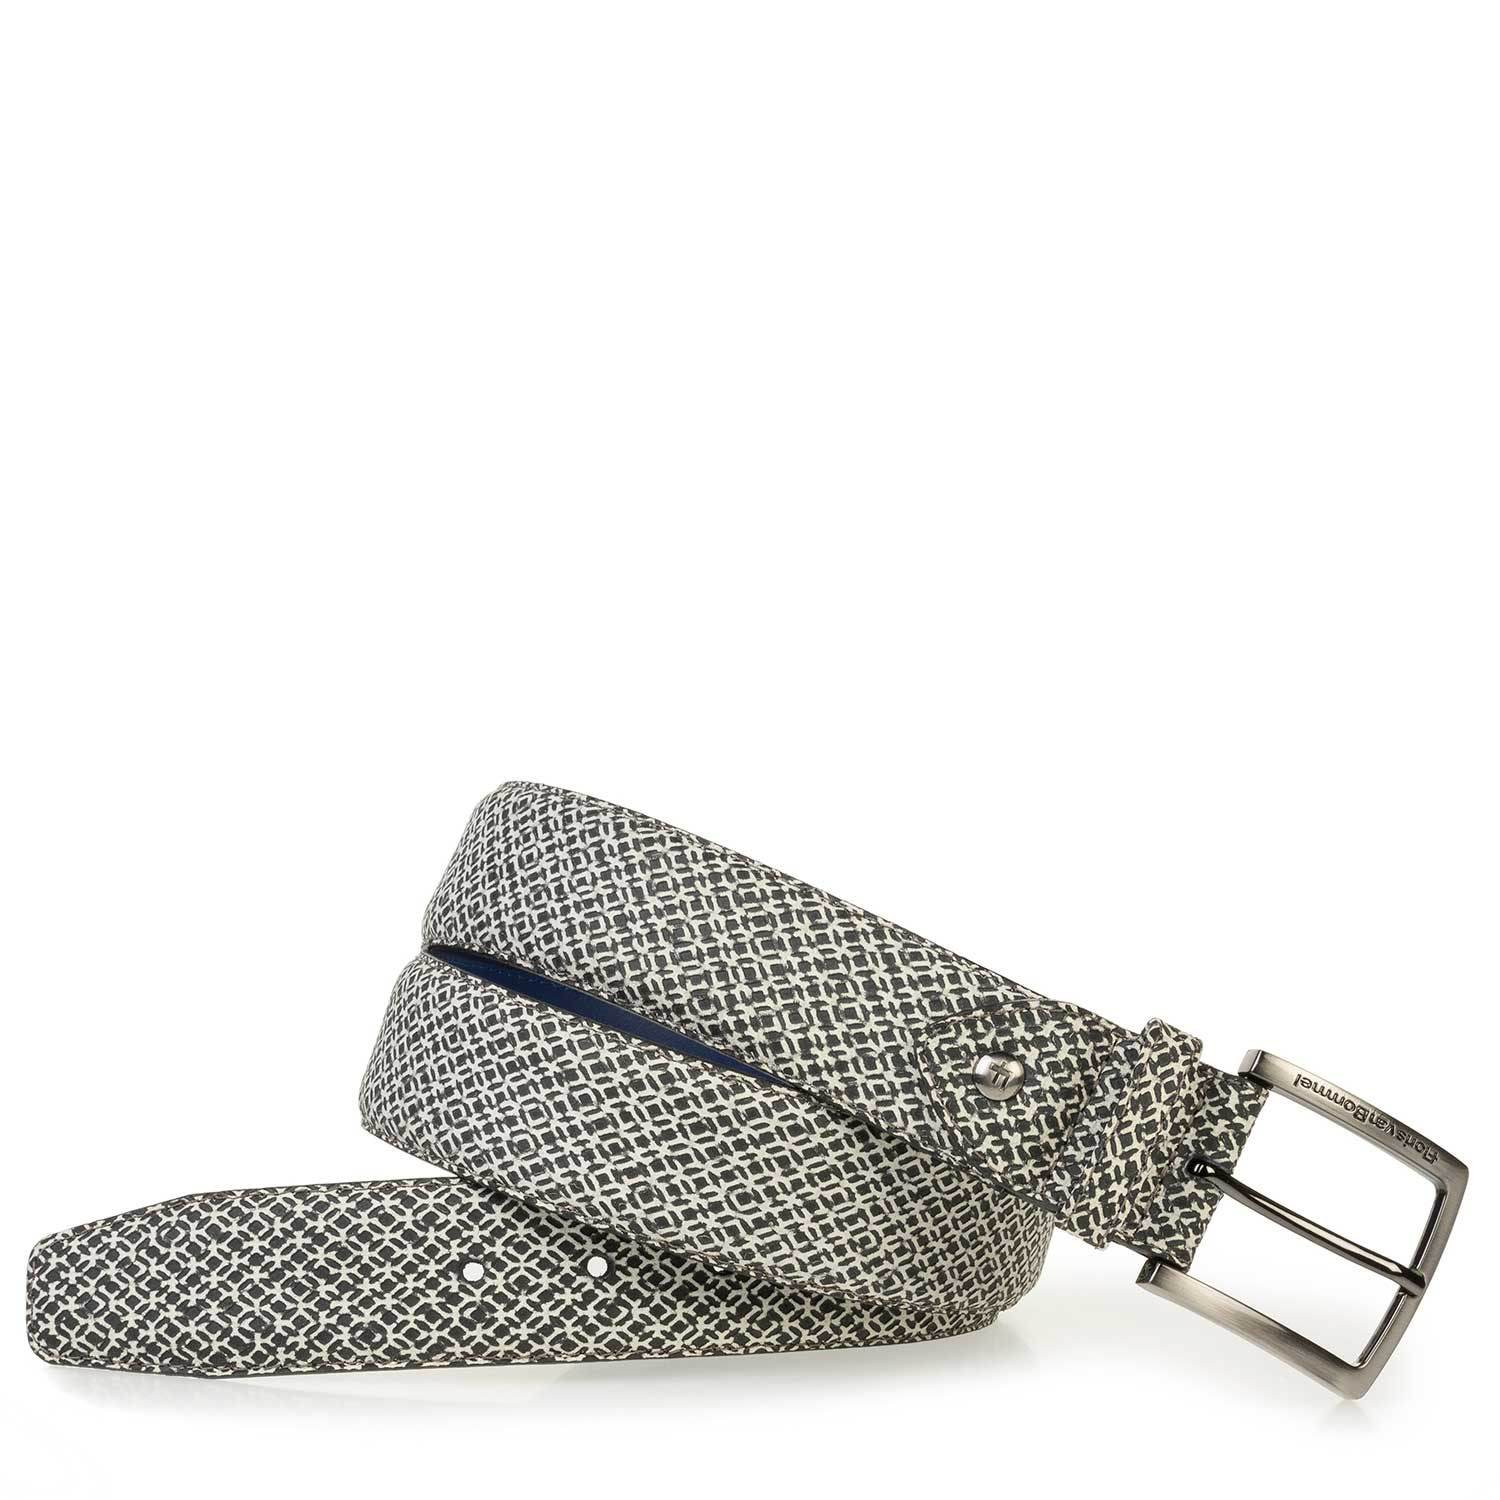 75189/59 - White calf leather belt with a black geometric print